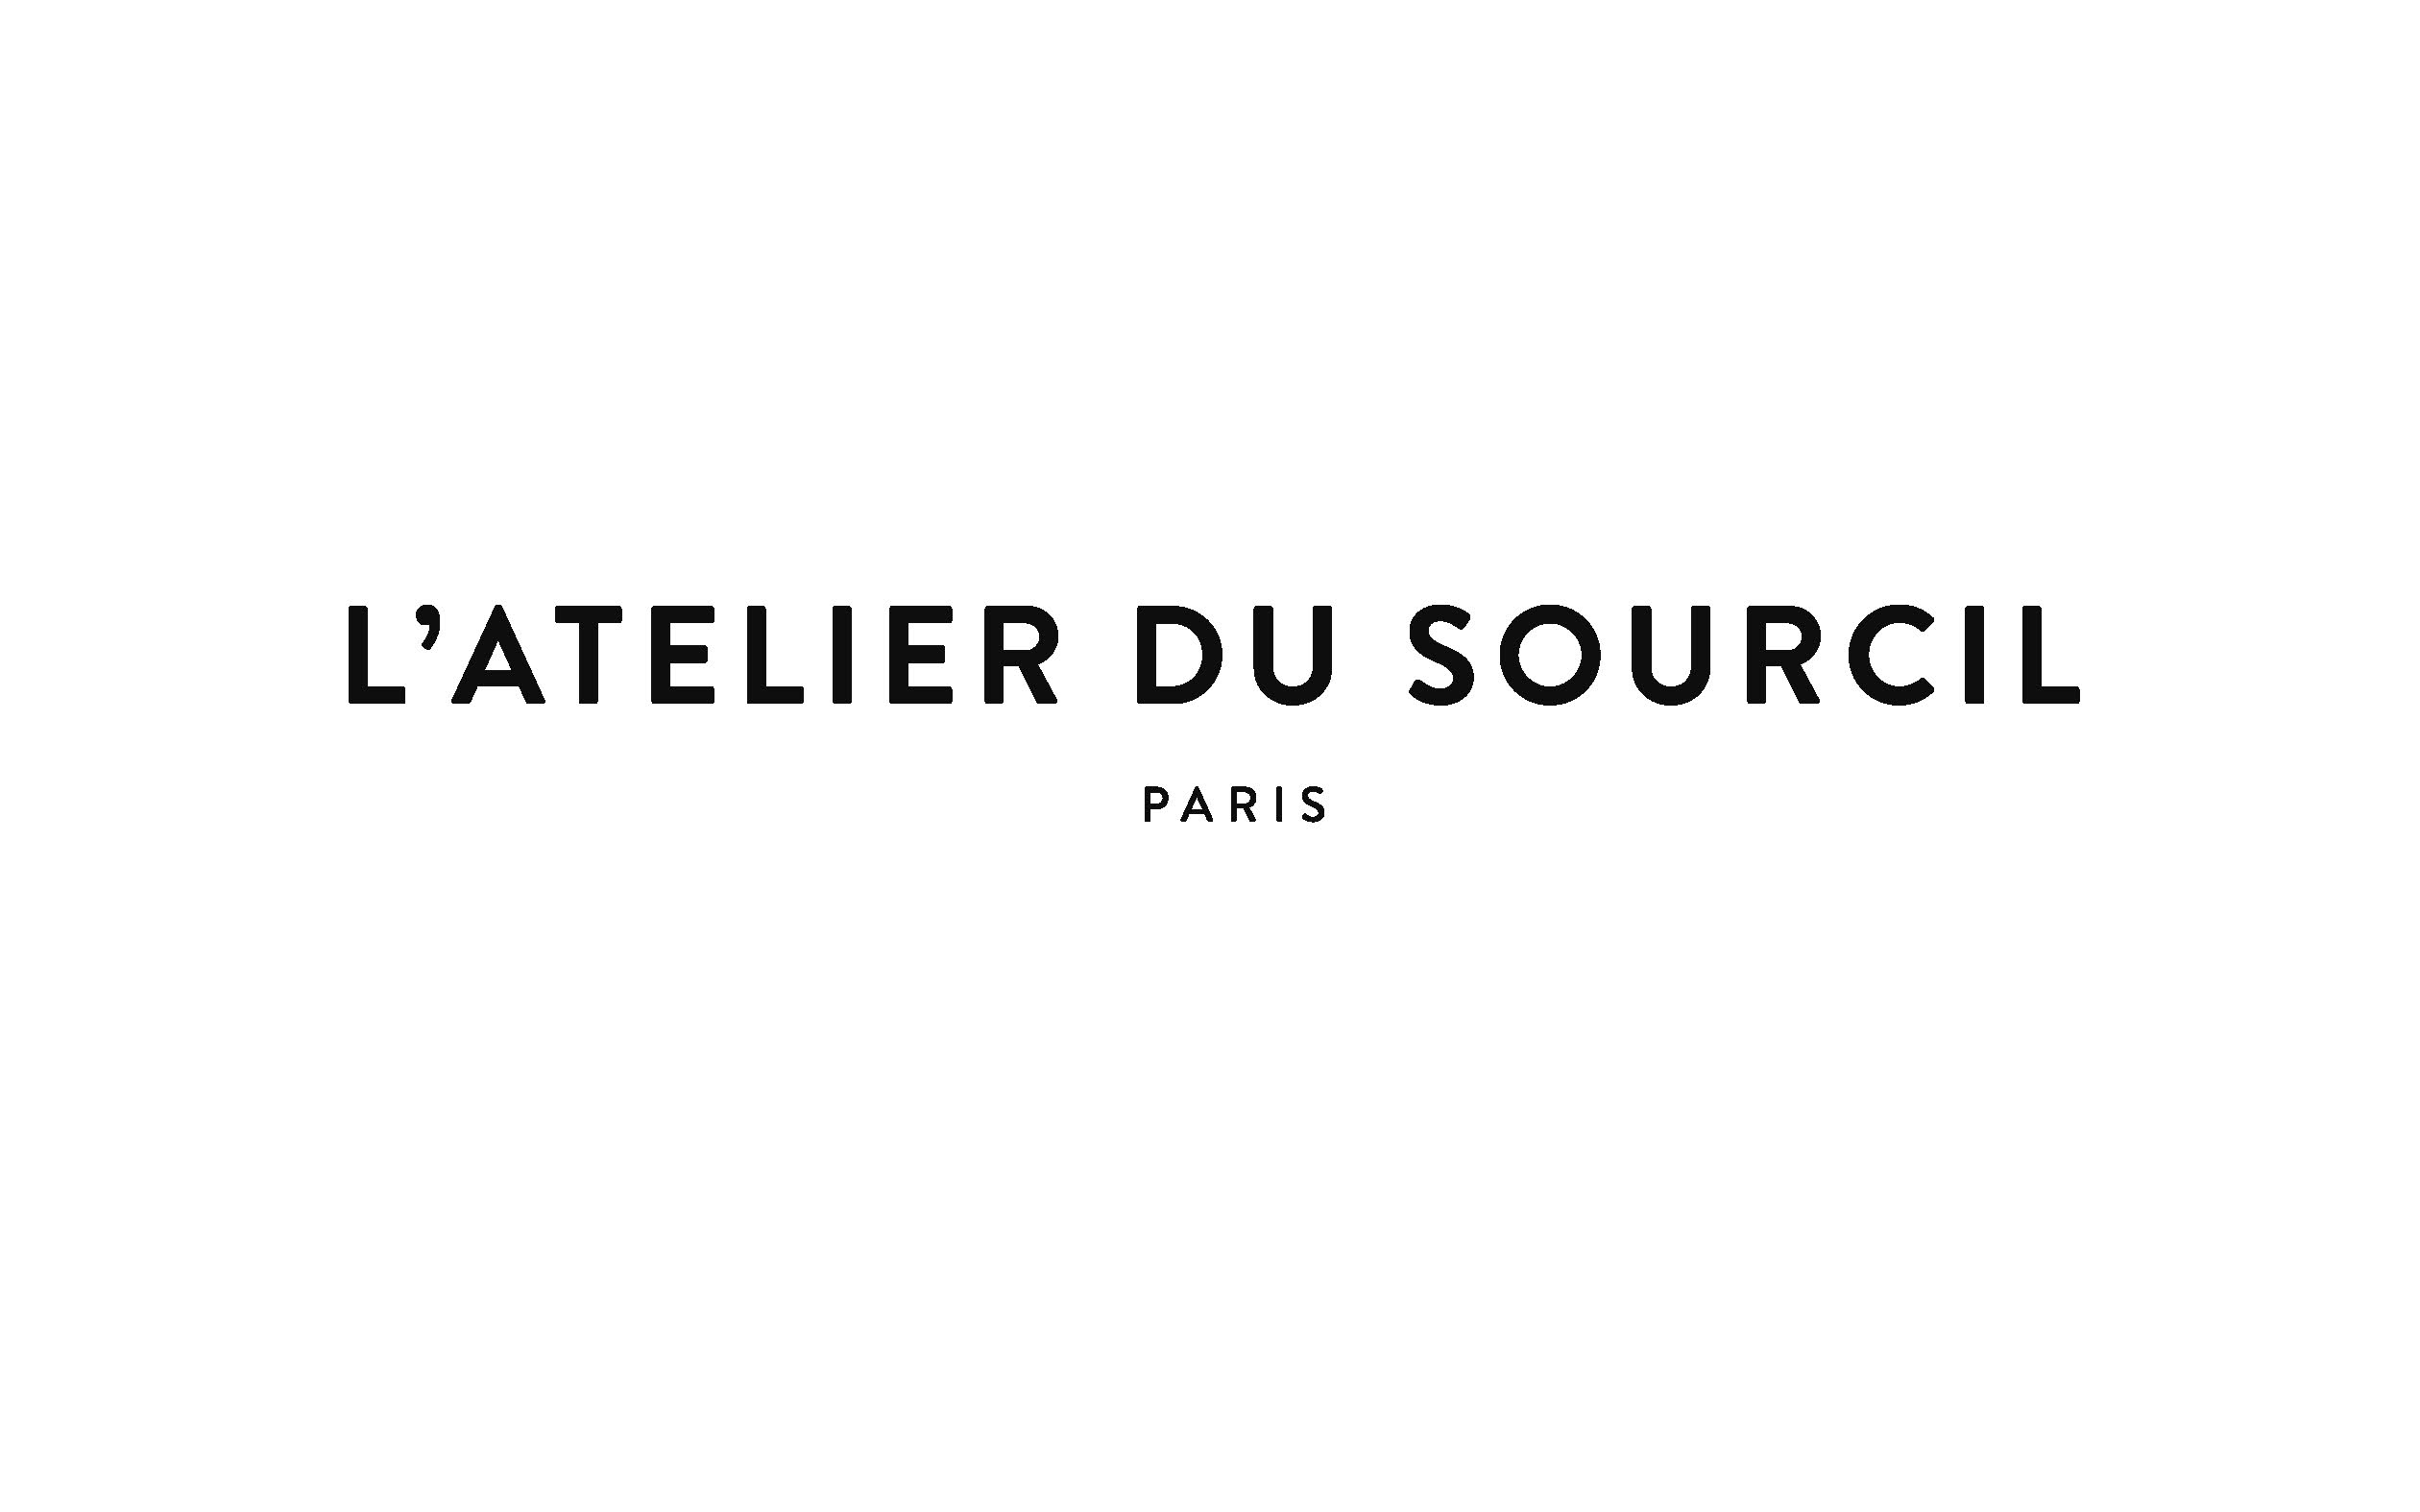 L'Atelier du Sourcil - Paris 12